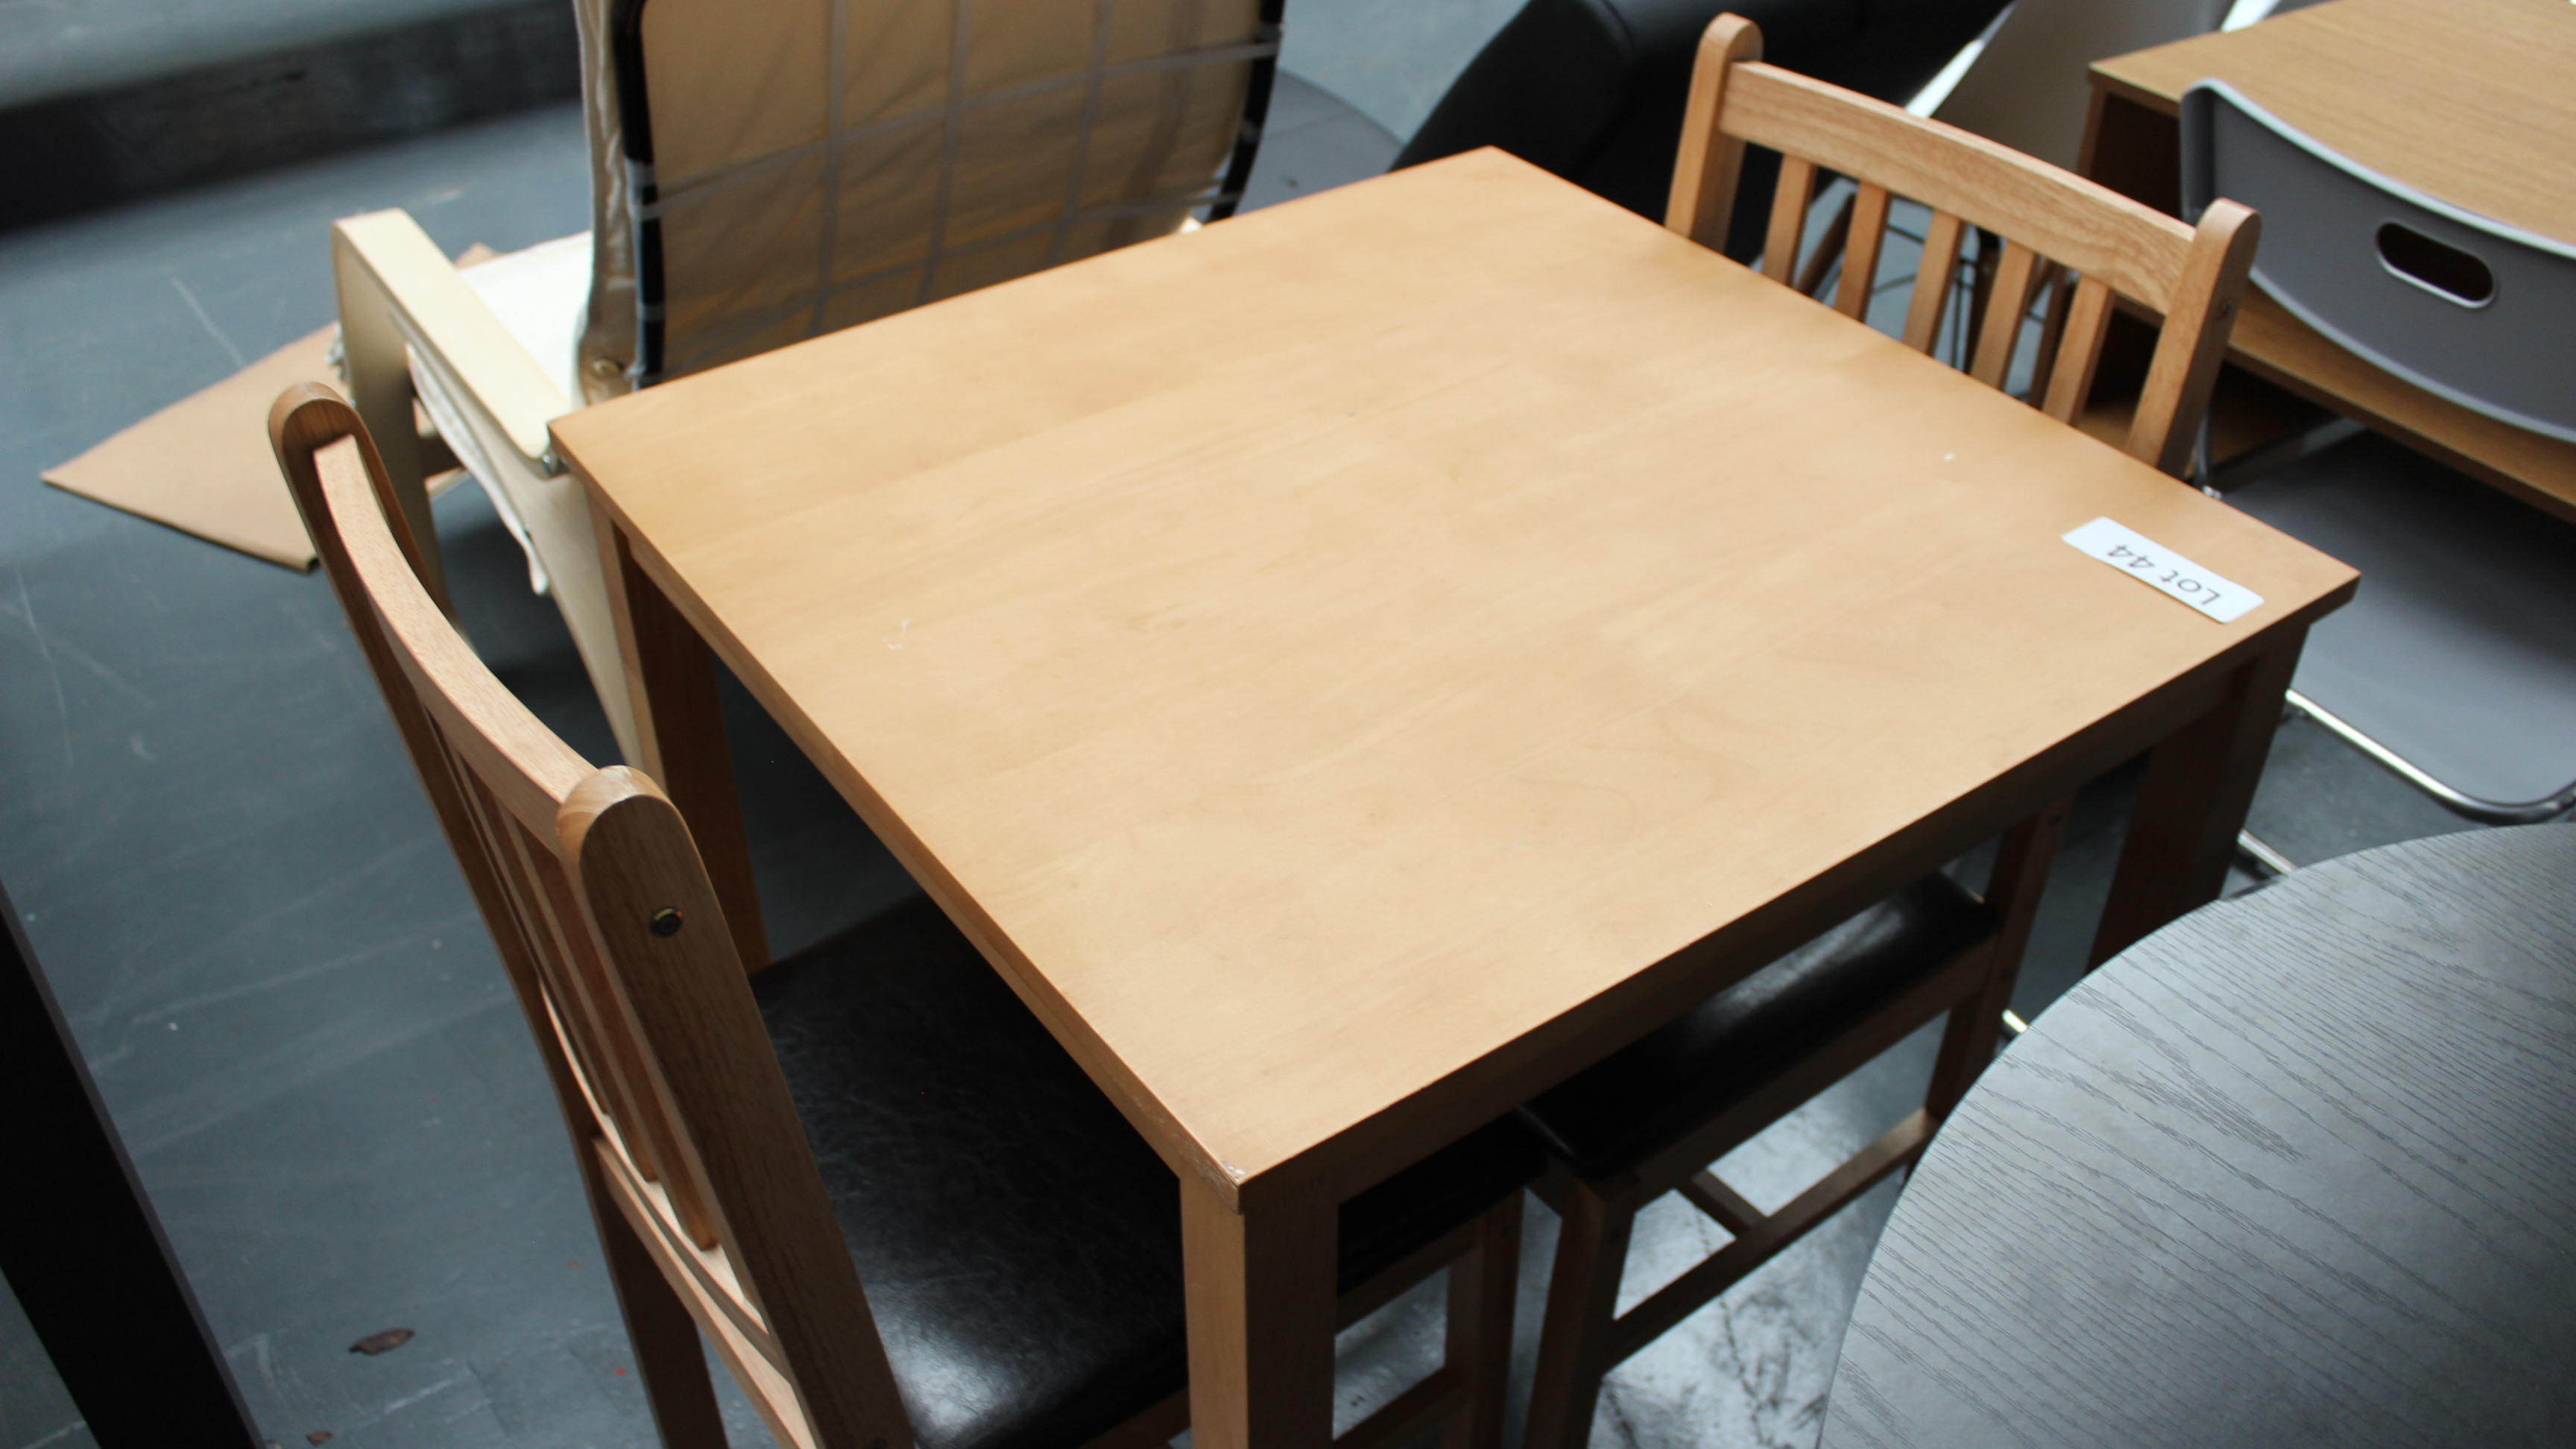 Lot 44 - Wooden Dining Table & 2 Chairs. Customer Returns